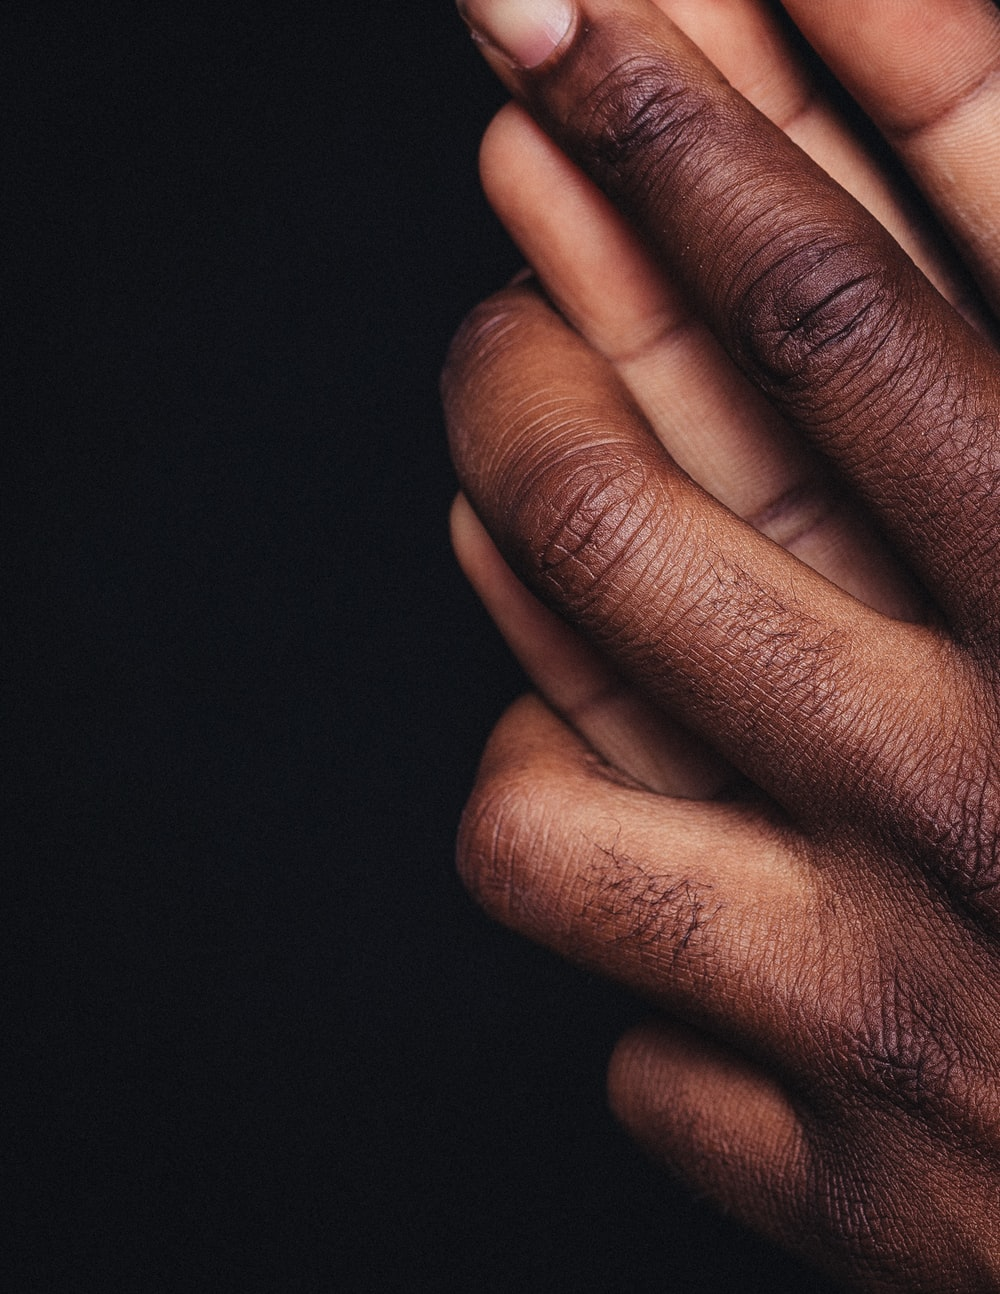 persons hand on black background